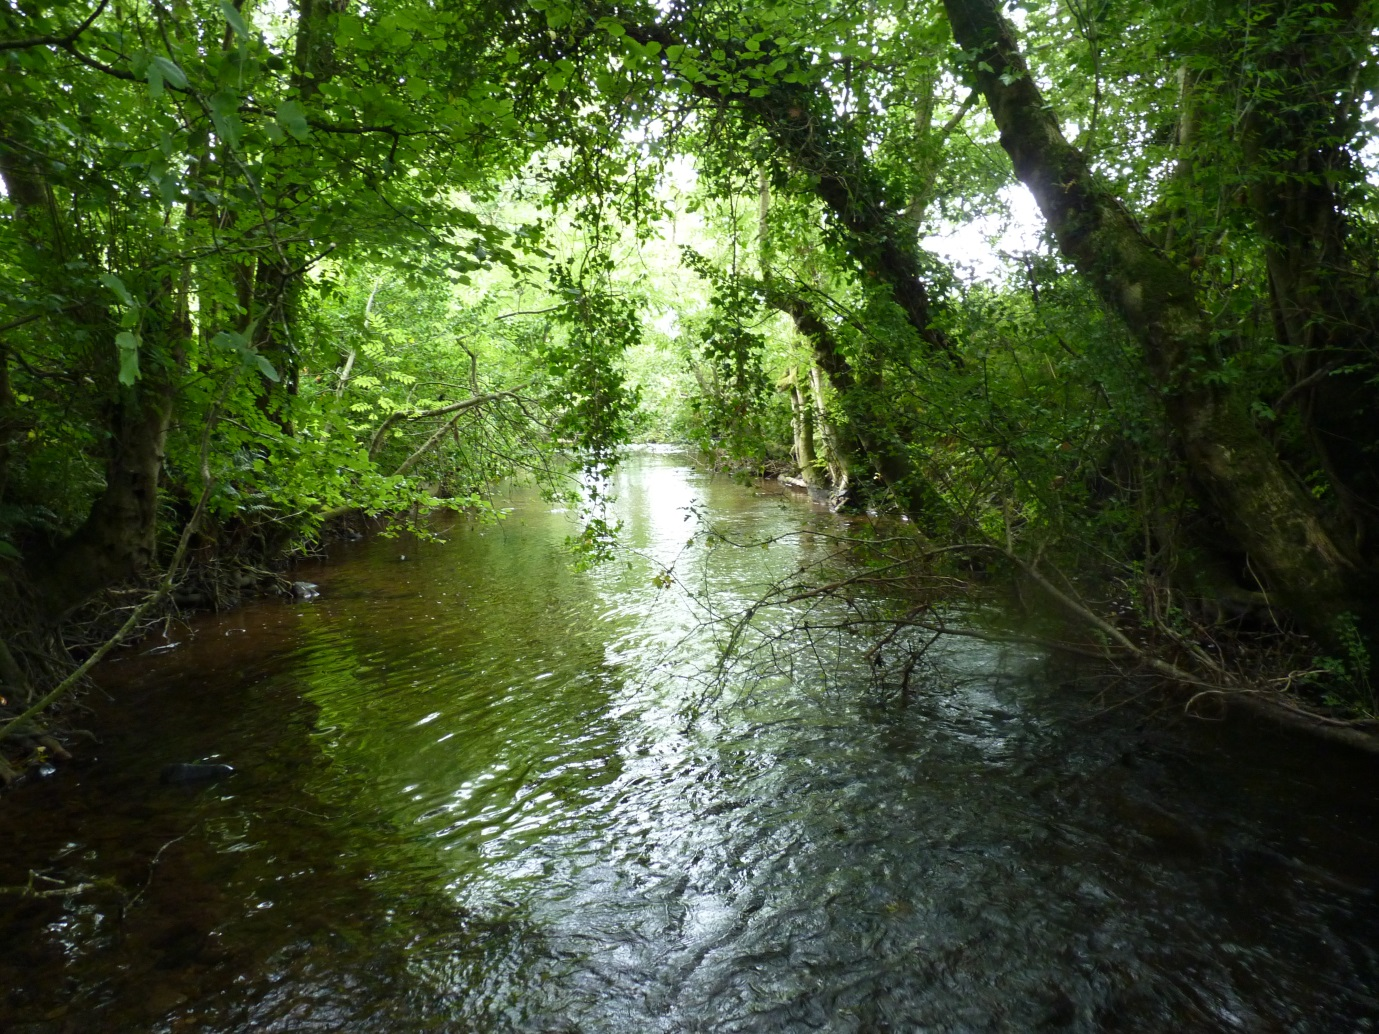 Natural stream channel in a tributary near the Suir headwaters (Photo E. Quinlan)